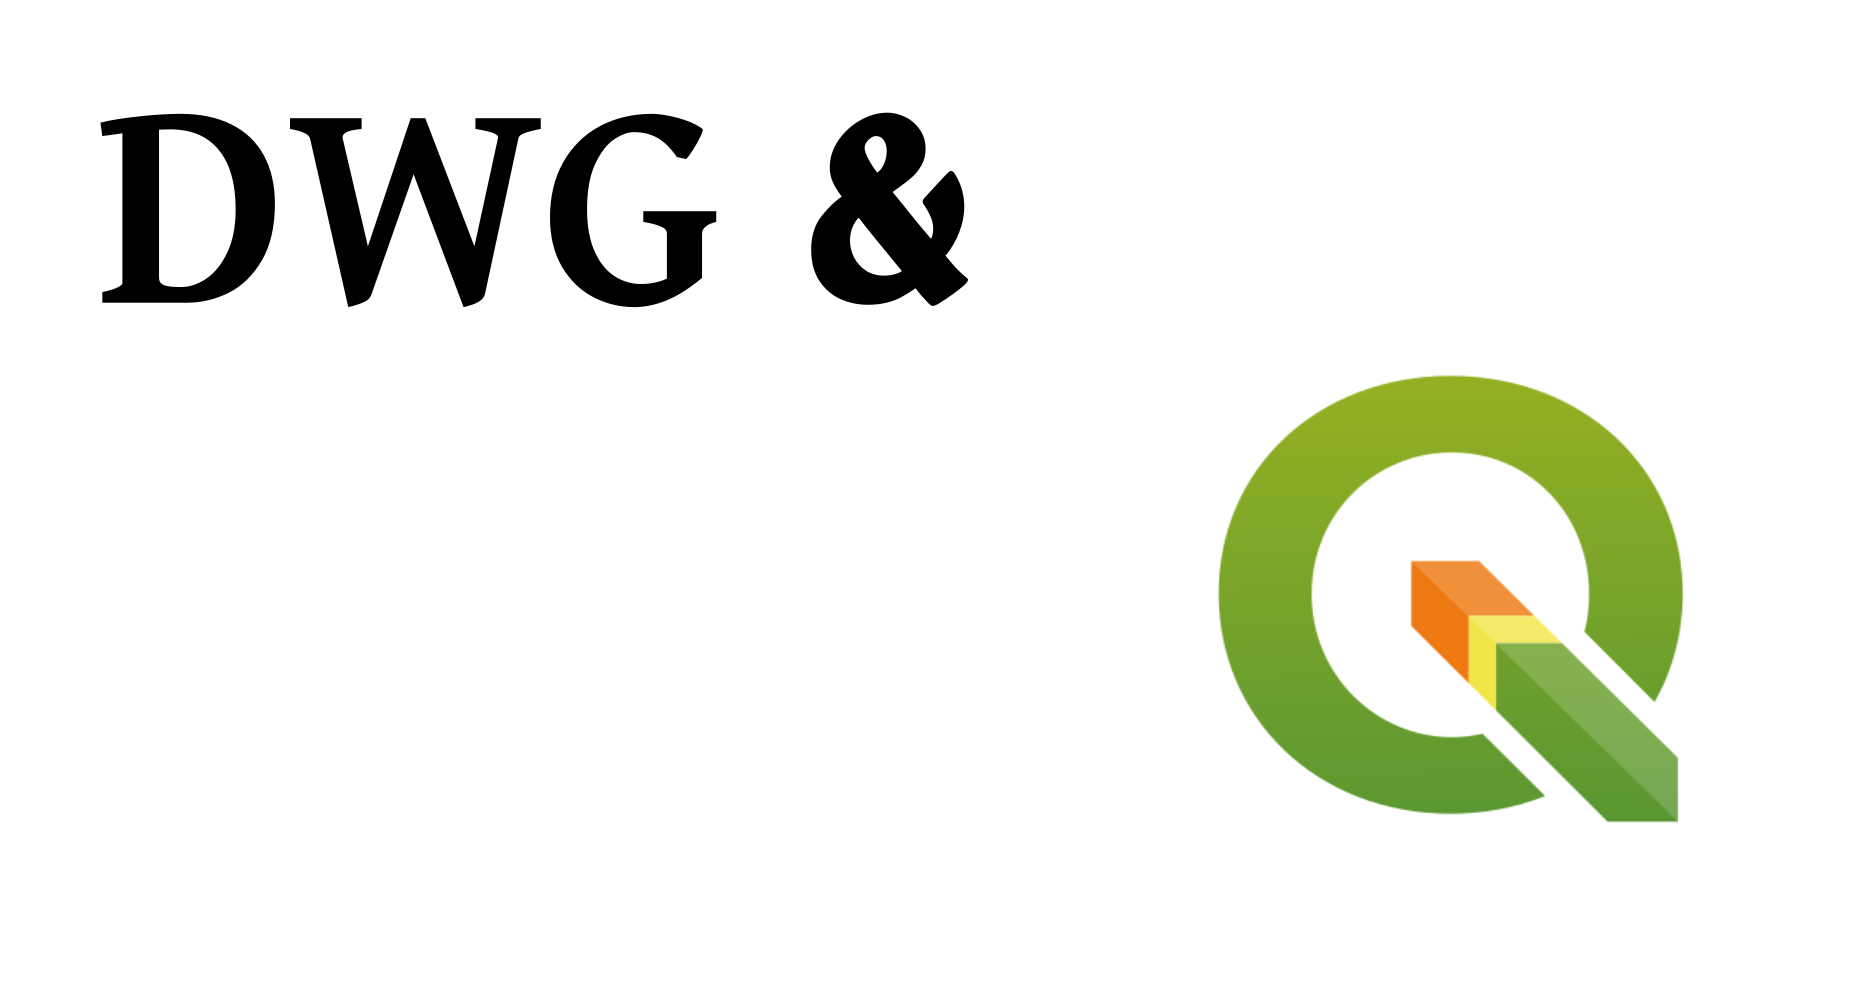 Come importare un dwg in QGis